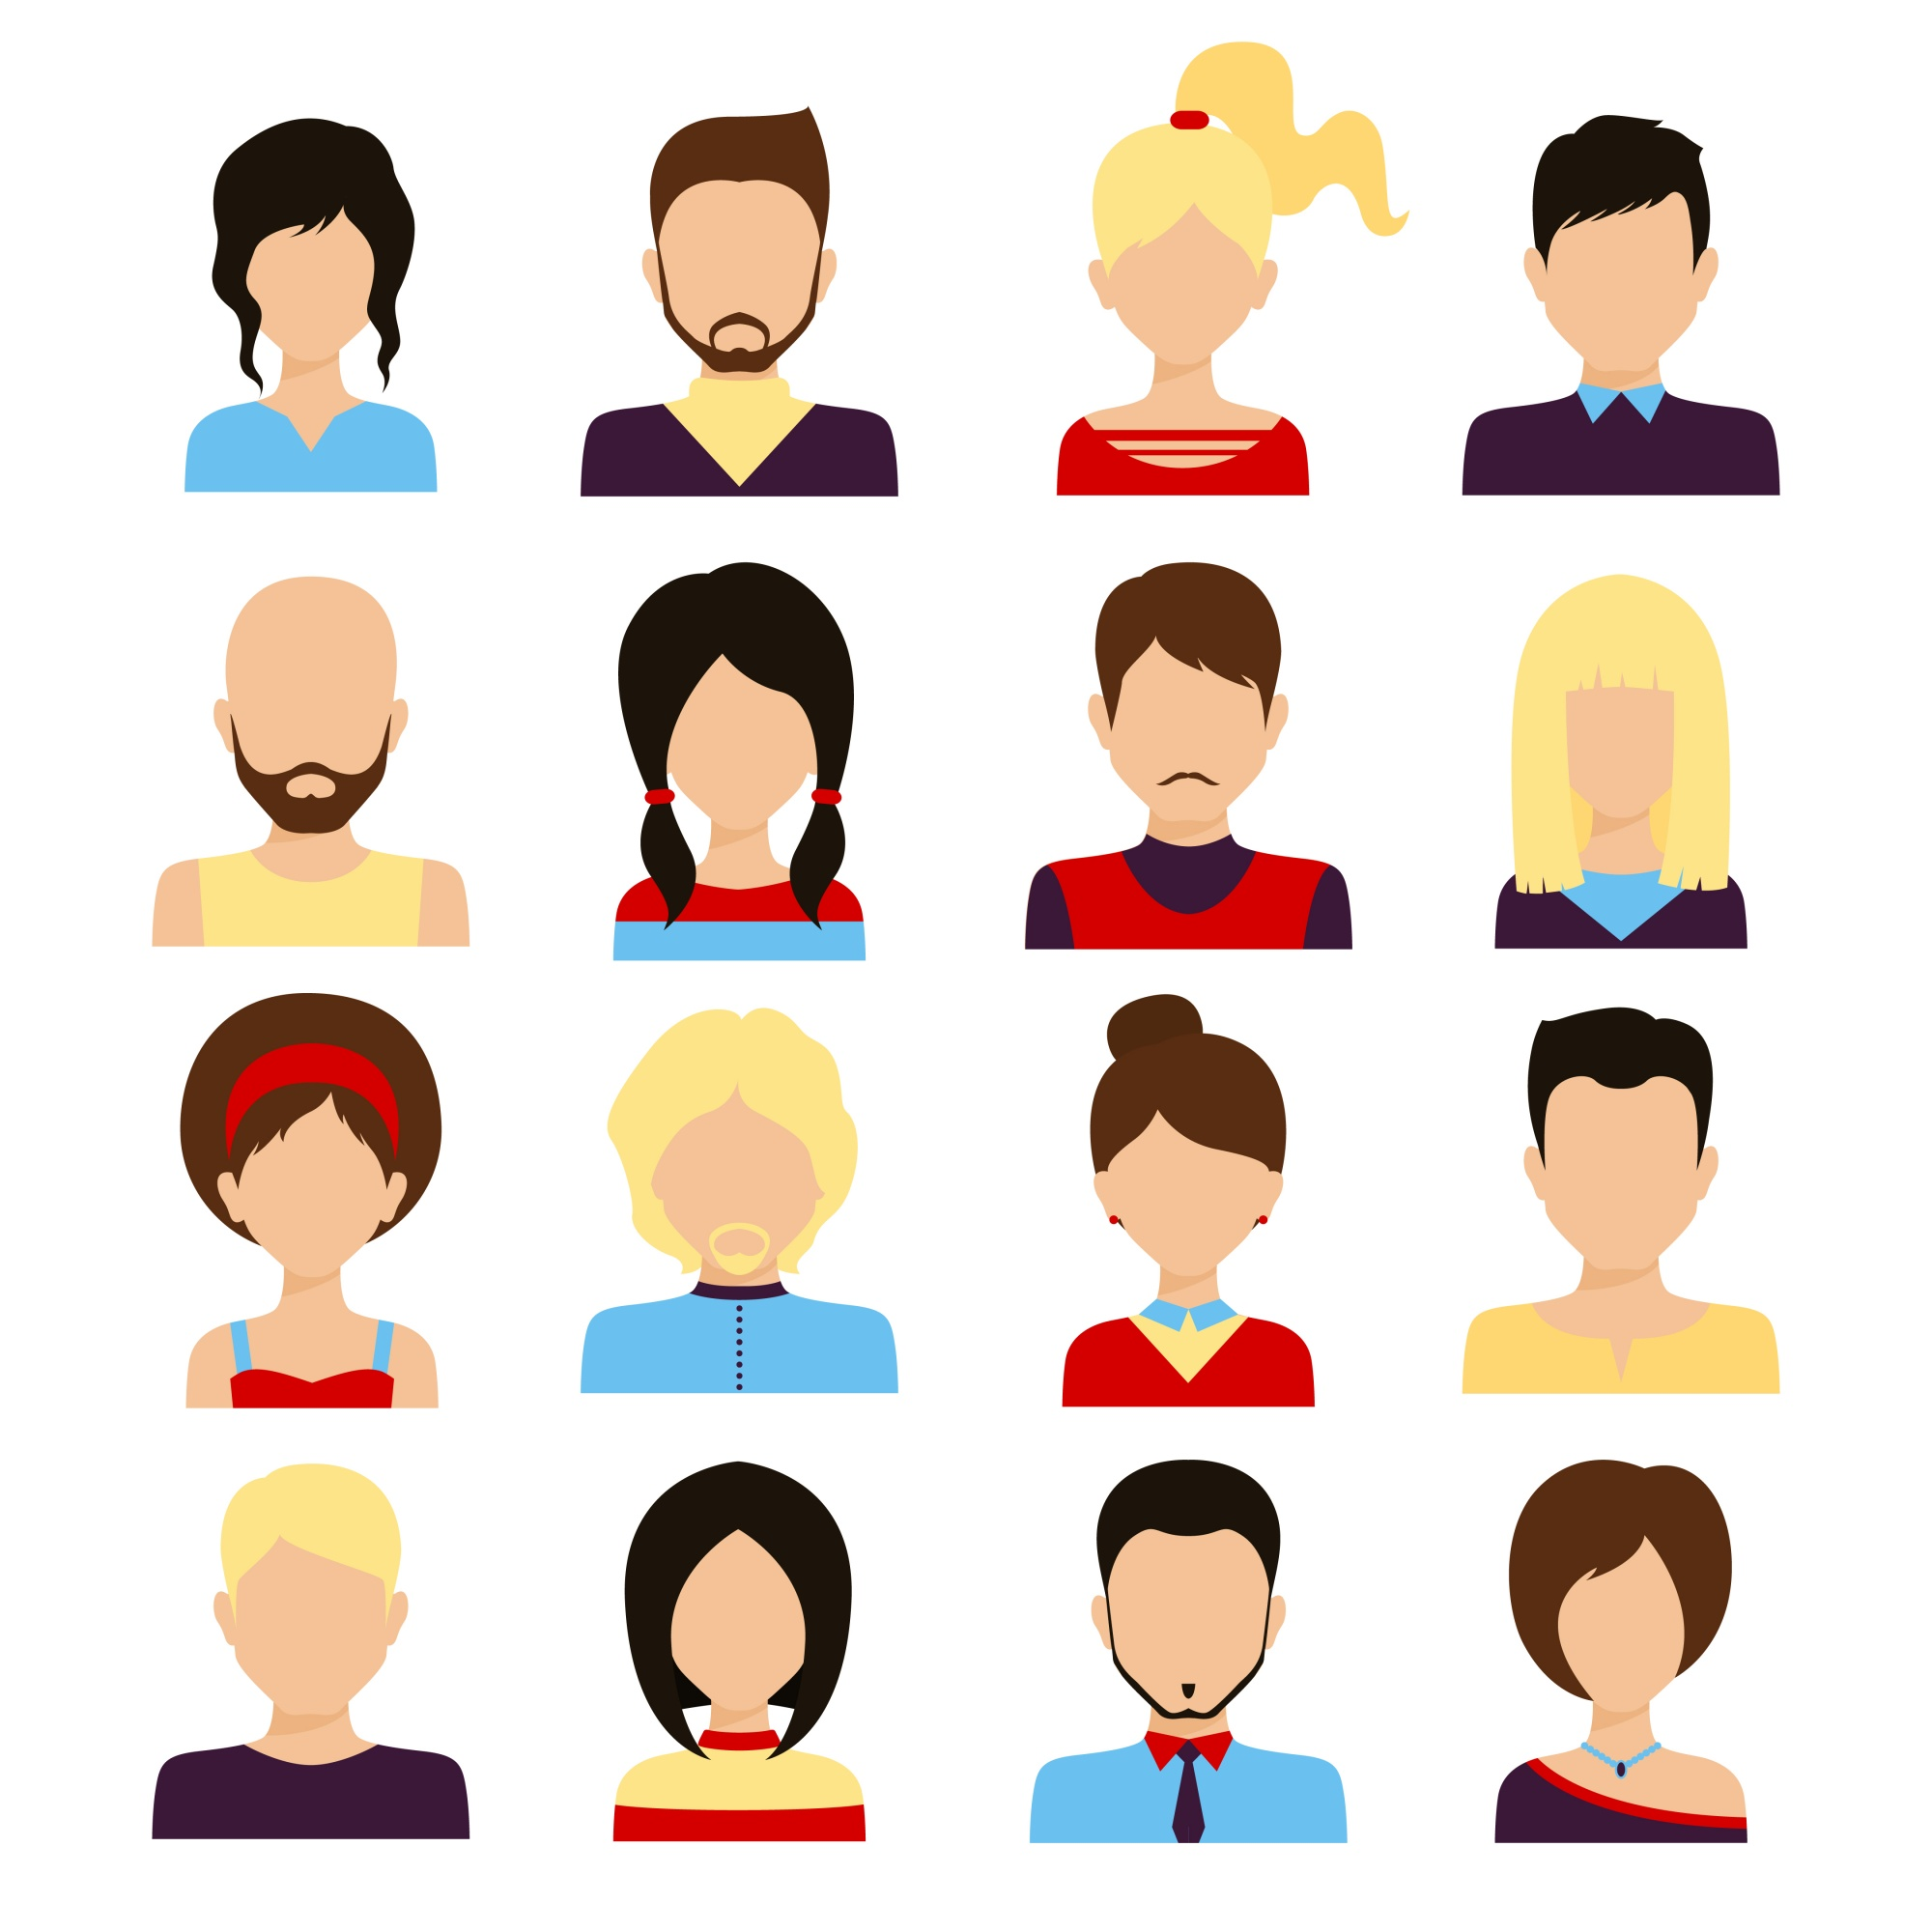 People avatar male and female human faces social network icons set isolated vector illustration